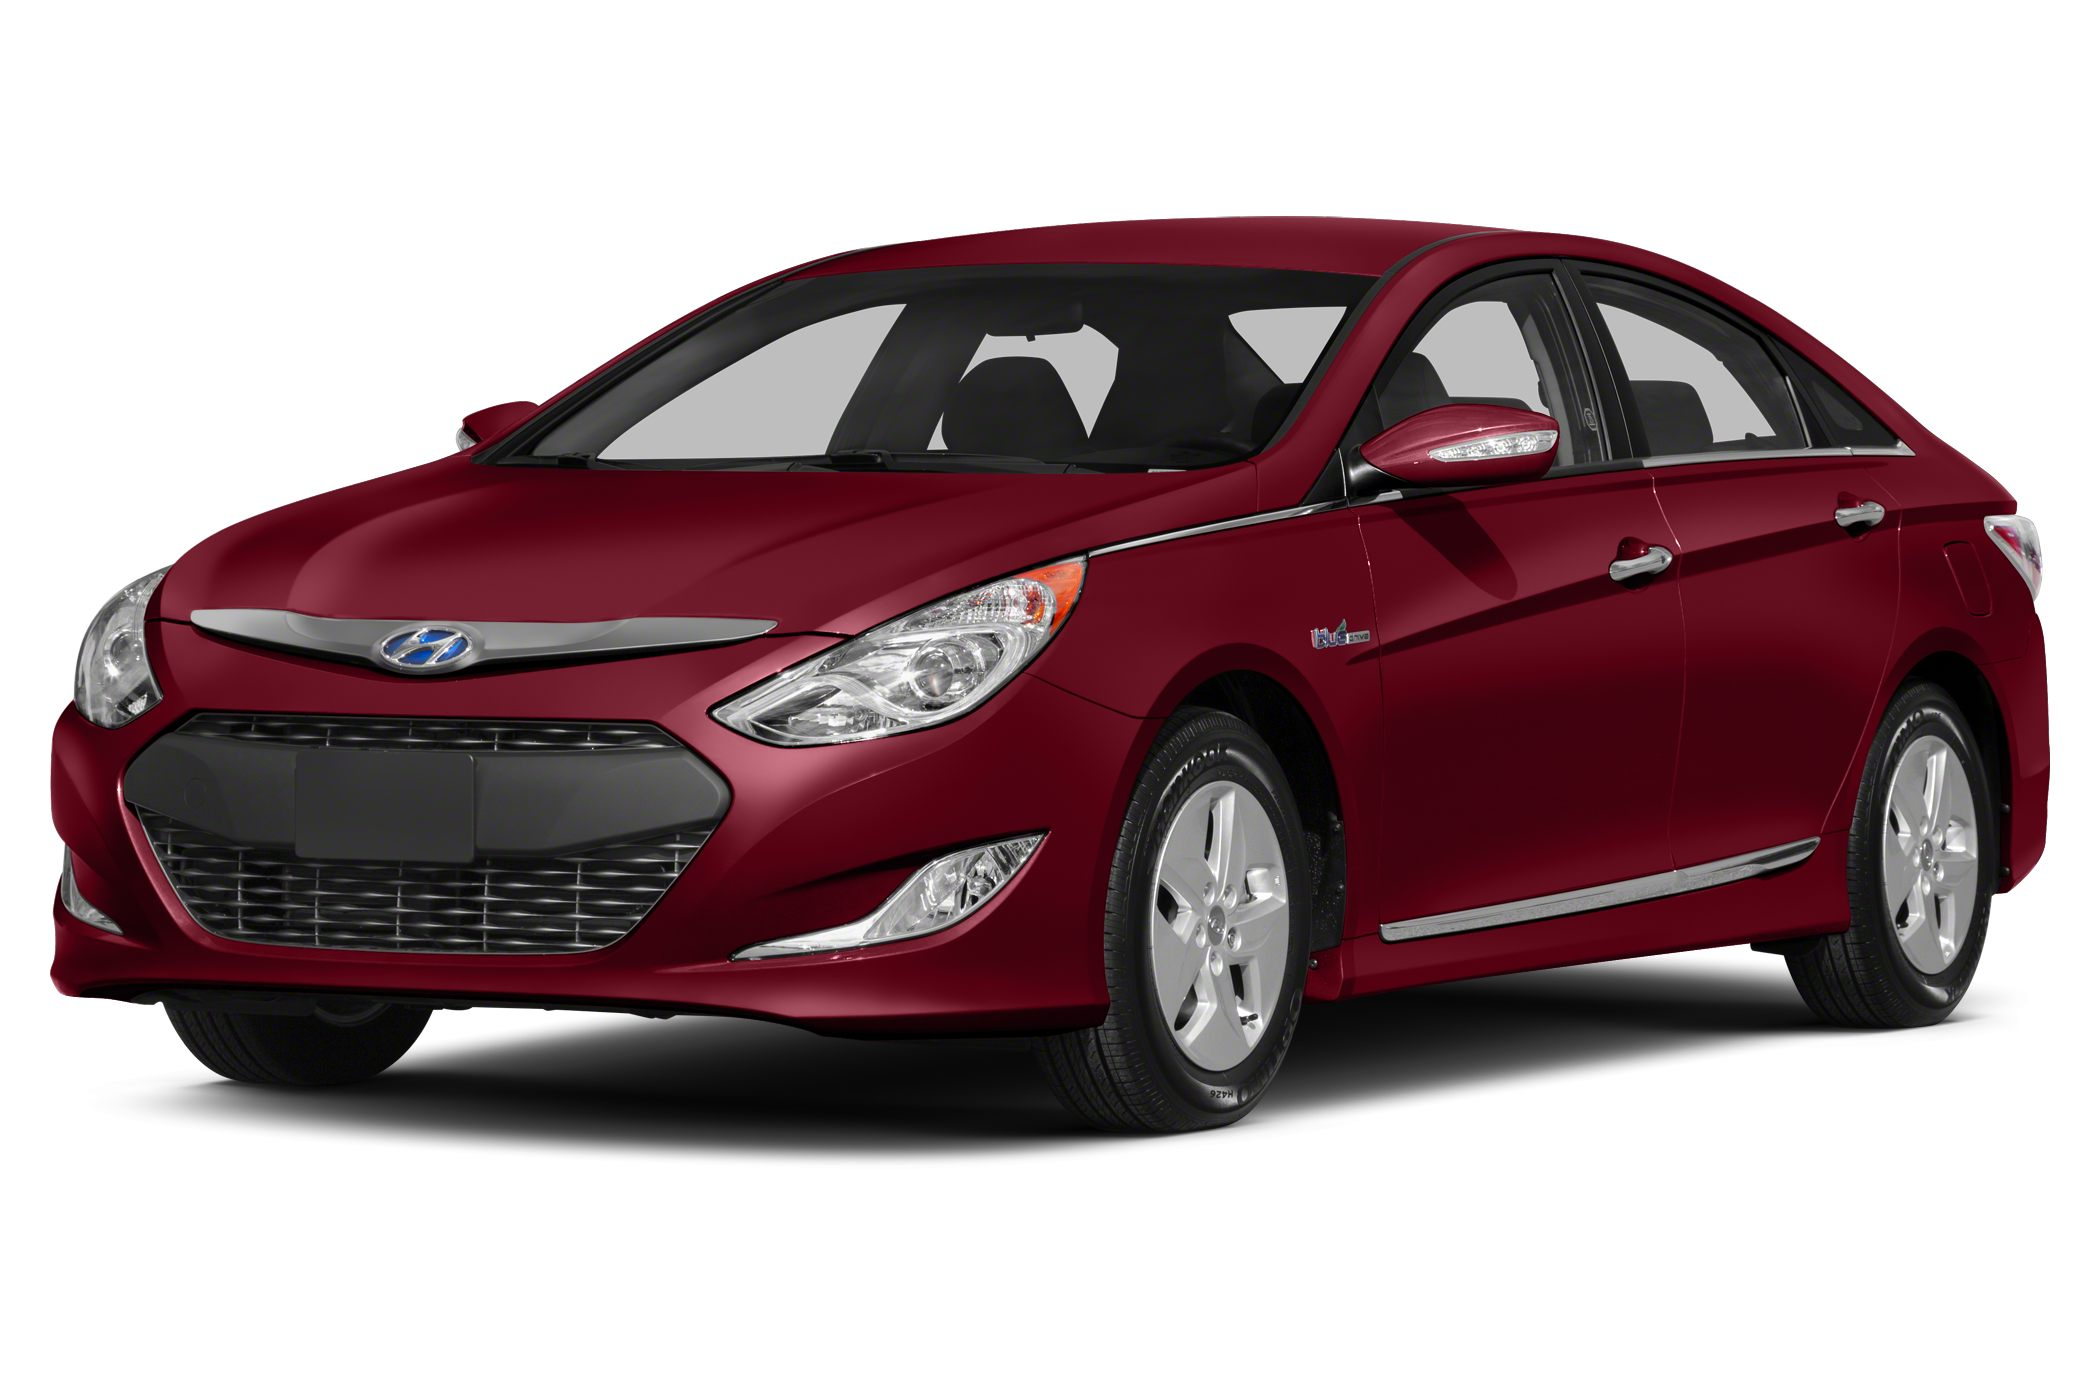 2014 Hyundai Sonata Hybrid Limited Sedan for sale in Bloomfield for $31,765 with 0 miles